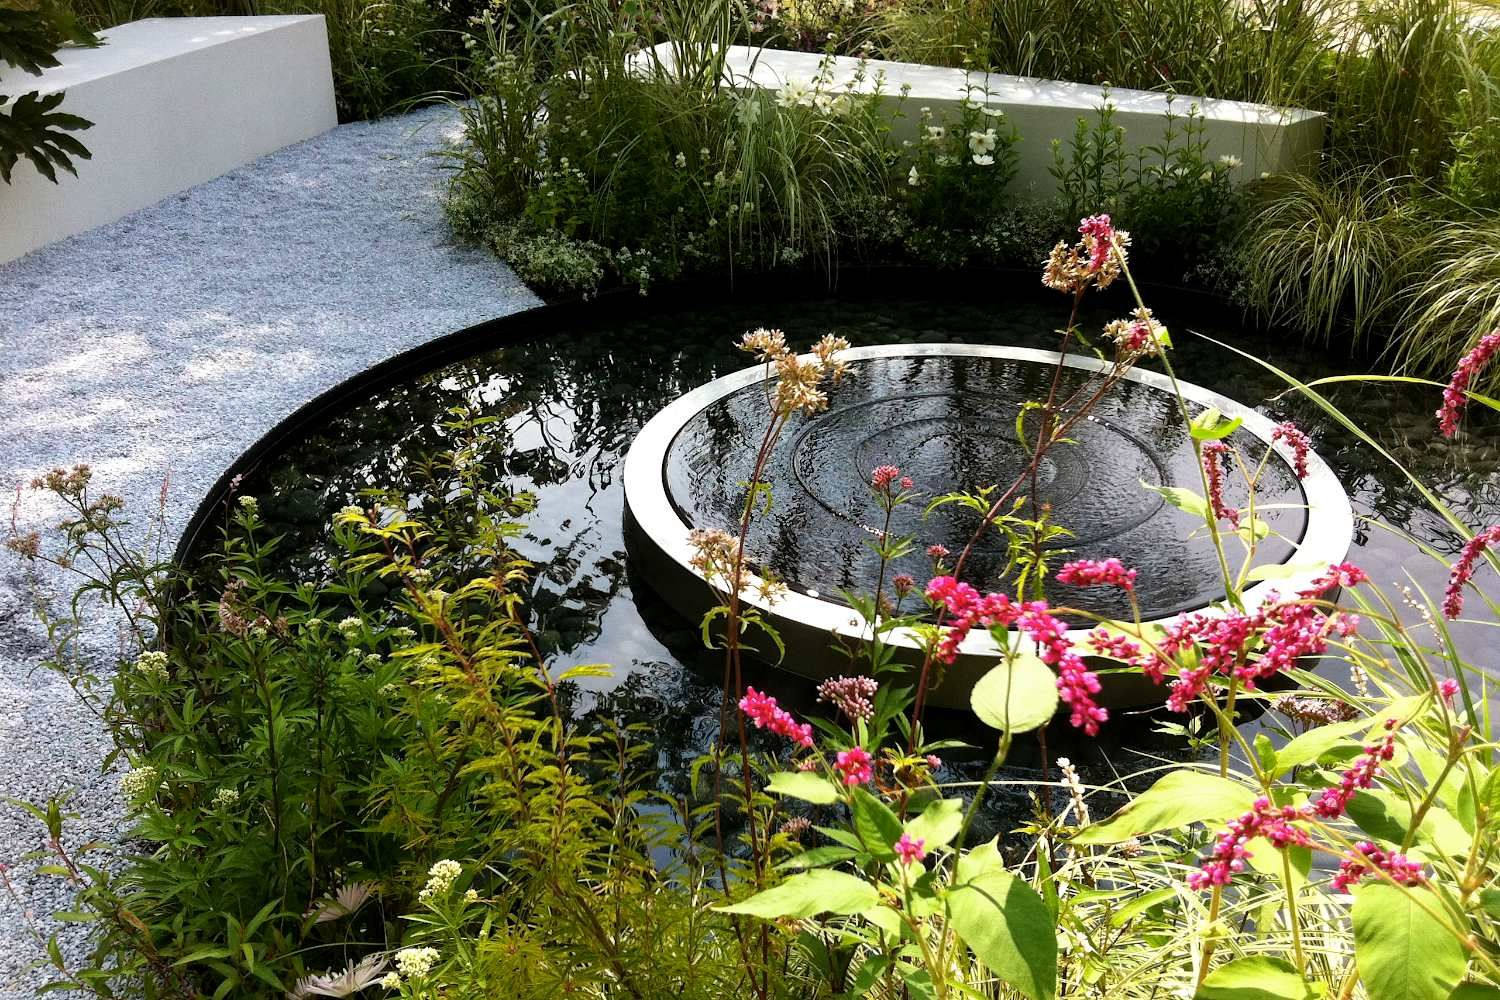 jo thomspon    reconnection show garden  japan    repinned on toby designs